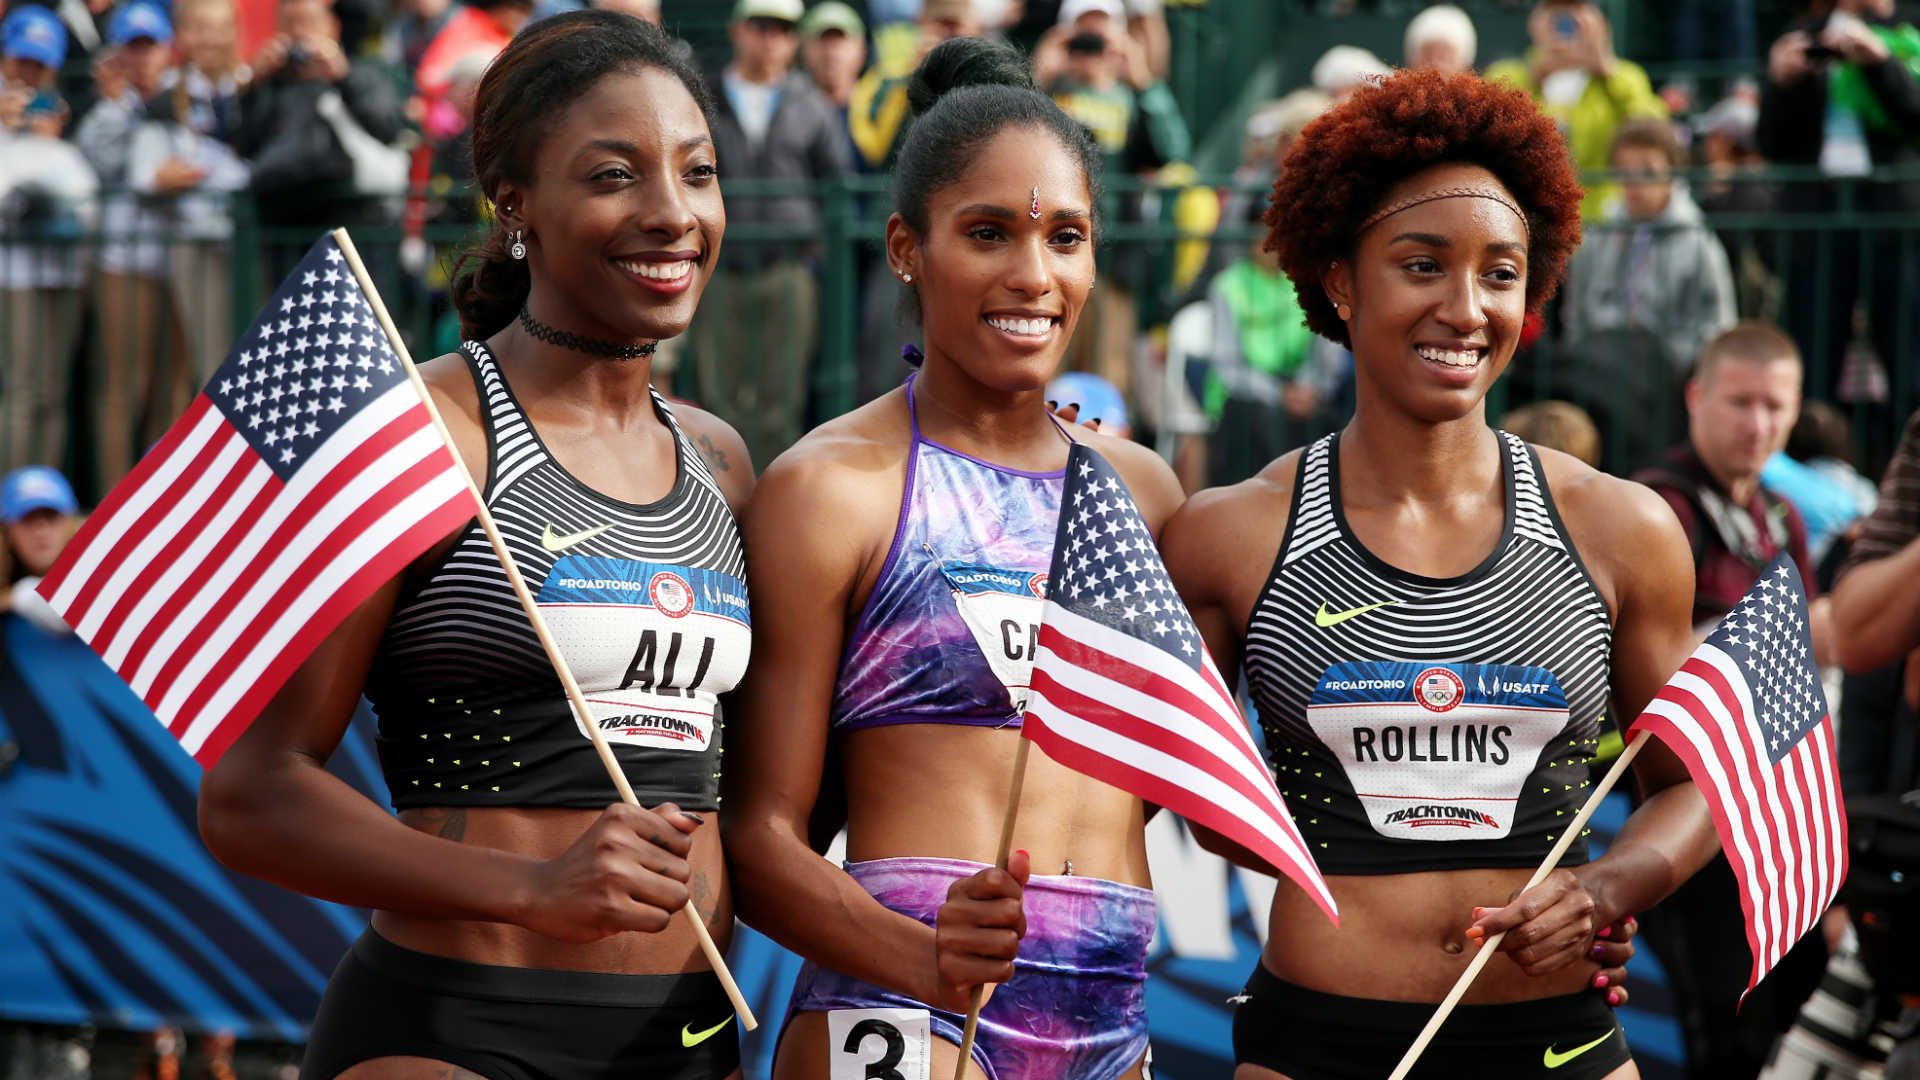 Brianna Rollins wins superb sprint hurdles at US Champs